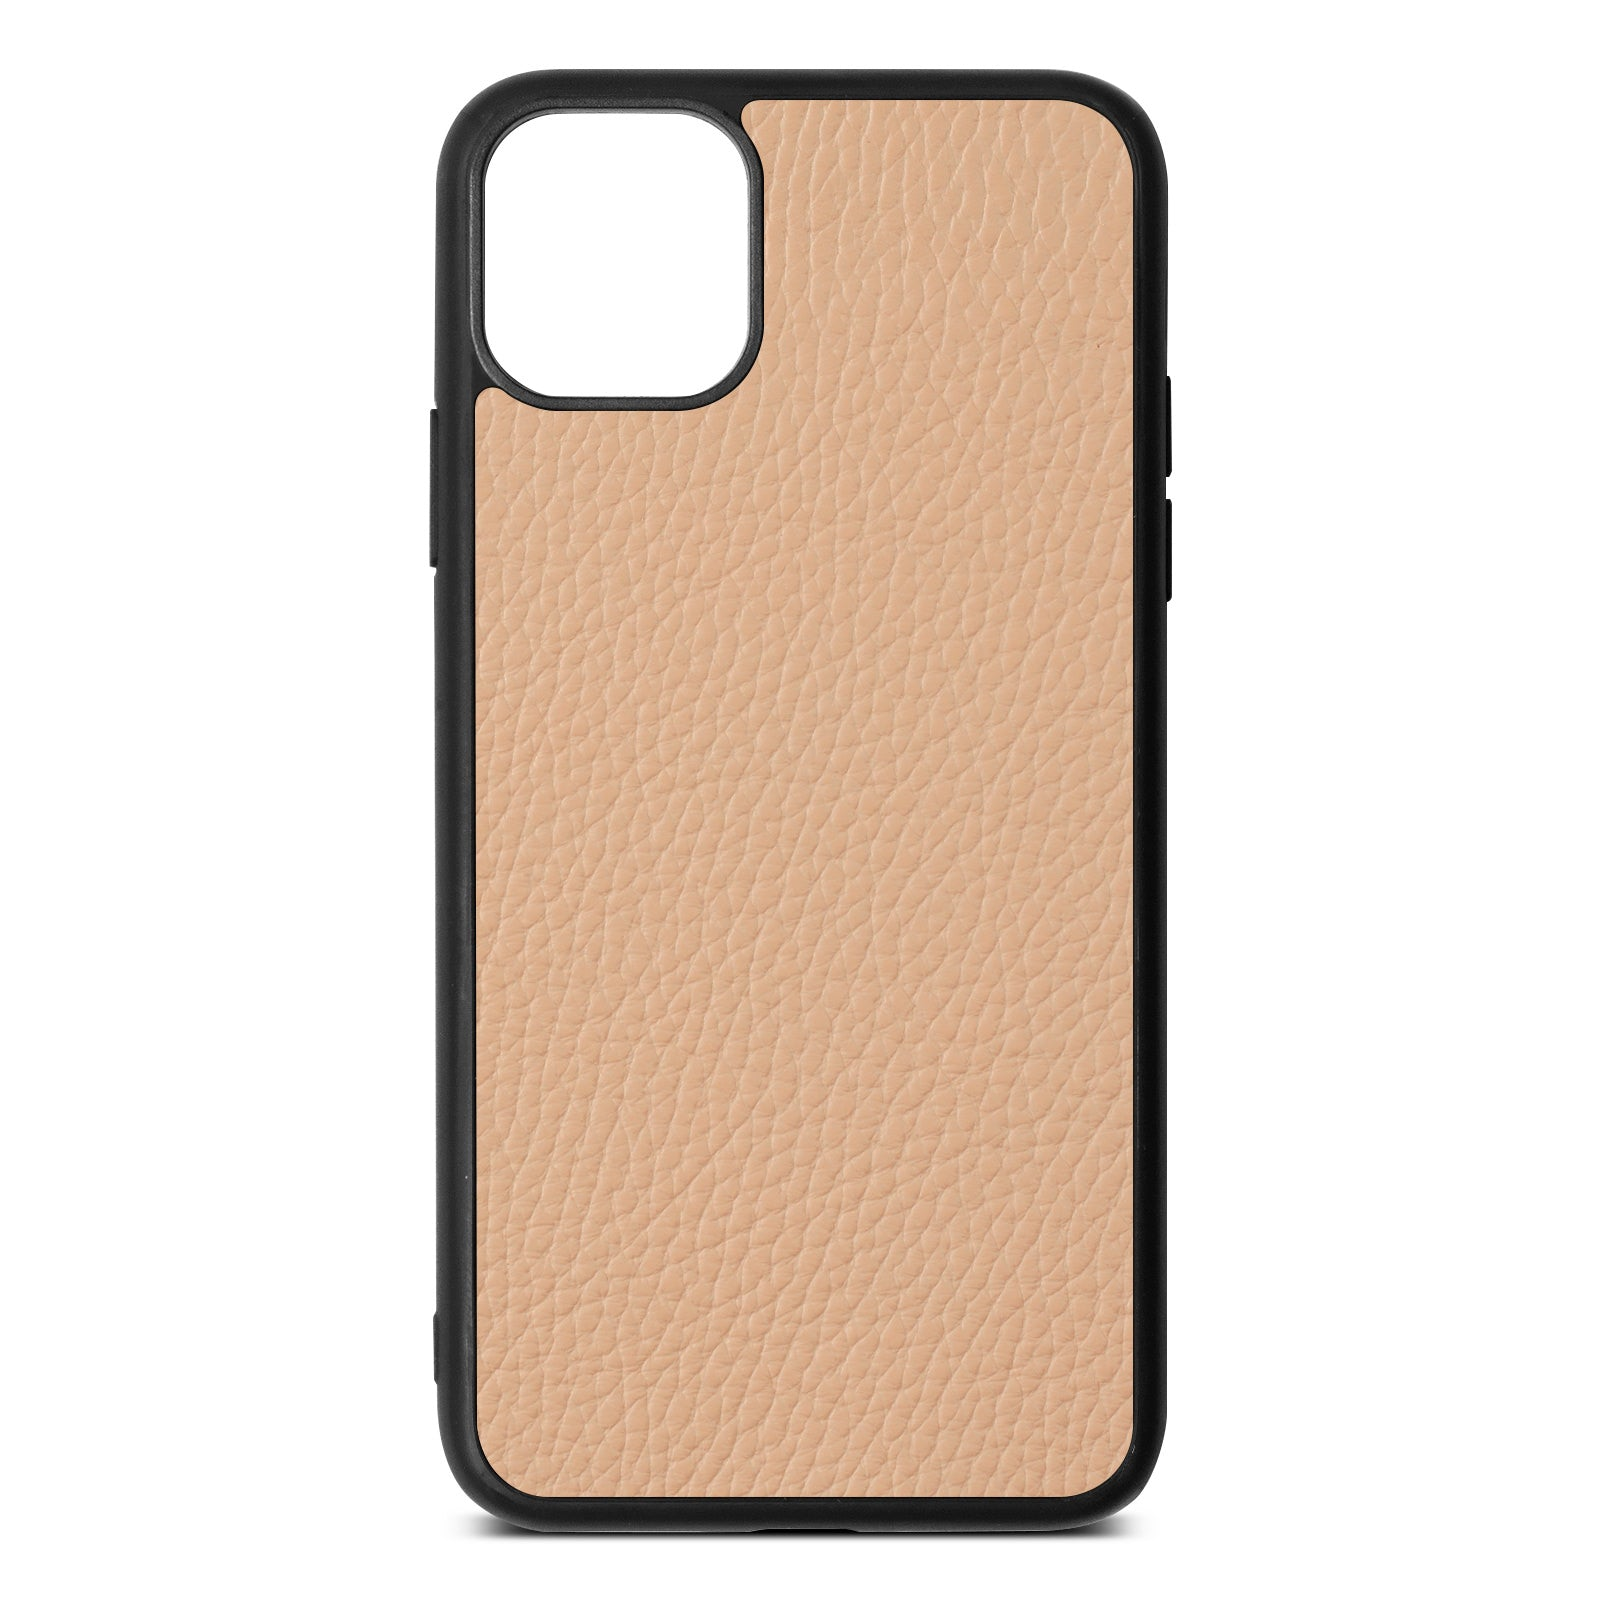 Blank iPhone 11 Pro Max Nude Pebble Leather Case